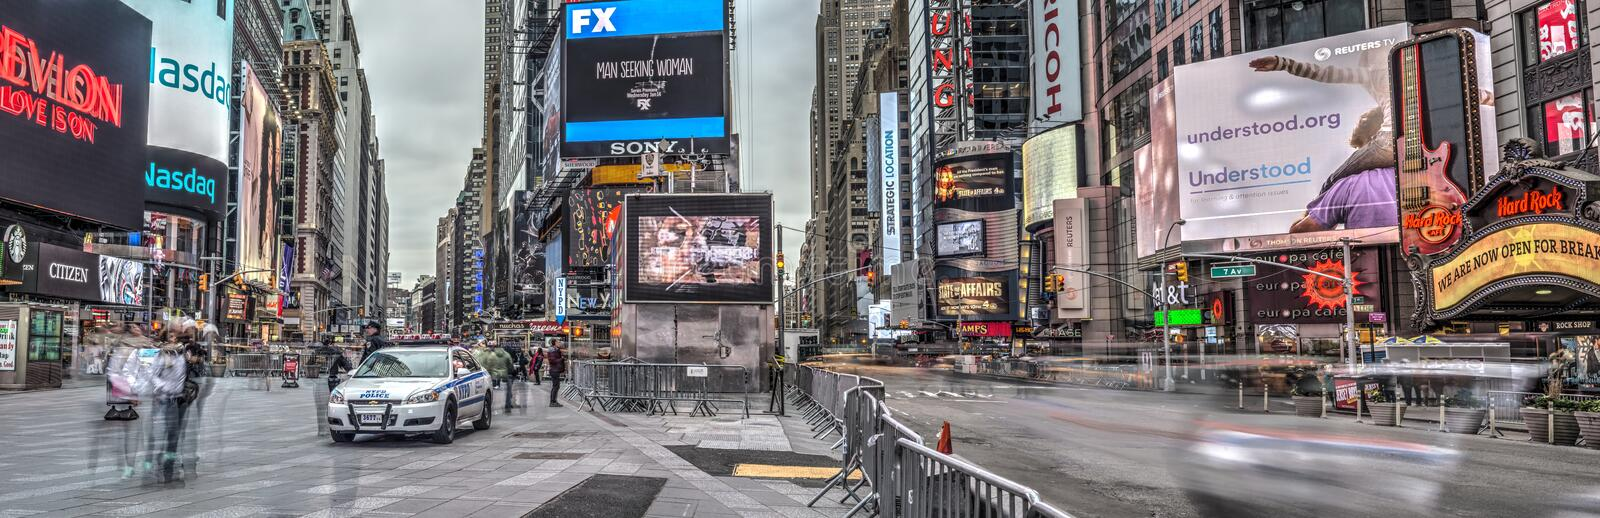 Times Square, New York City, Manhattan images stock